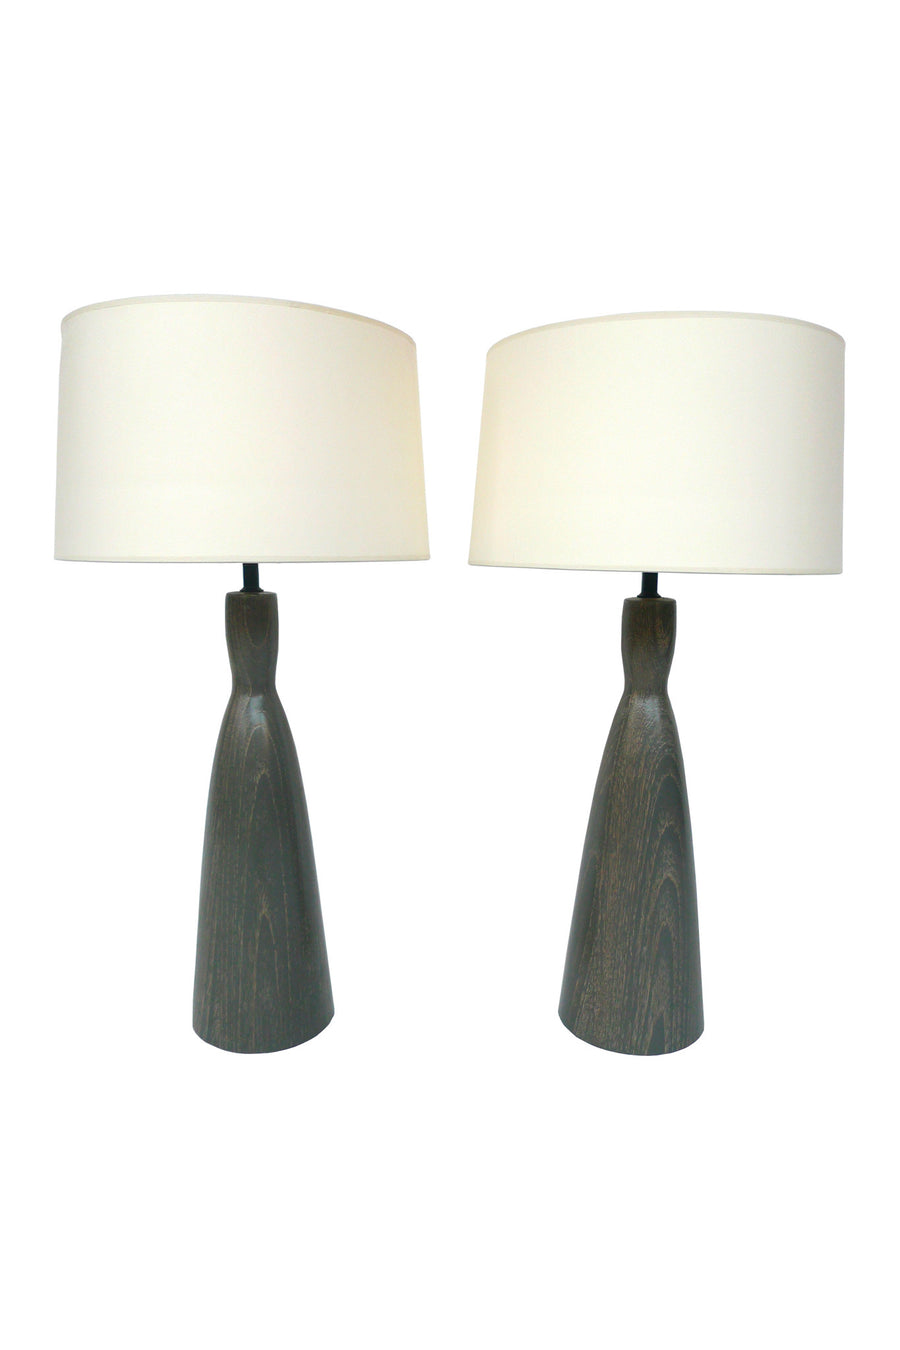 Pair of Cerused Oak Lamps